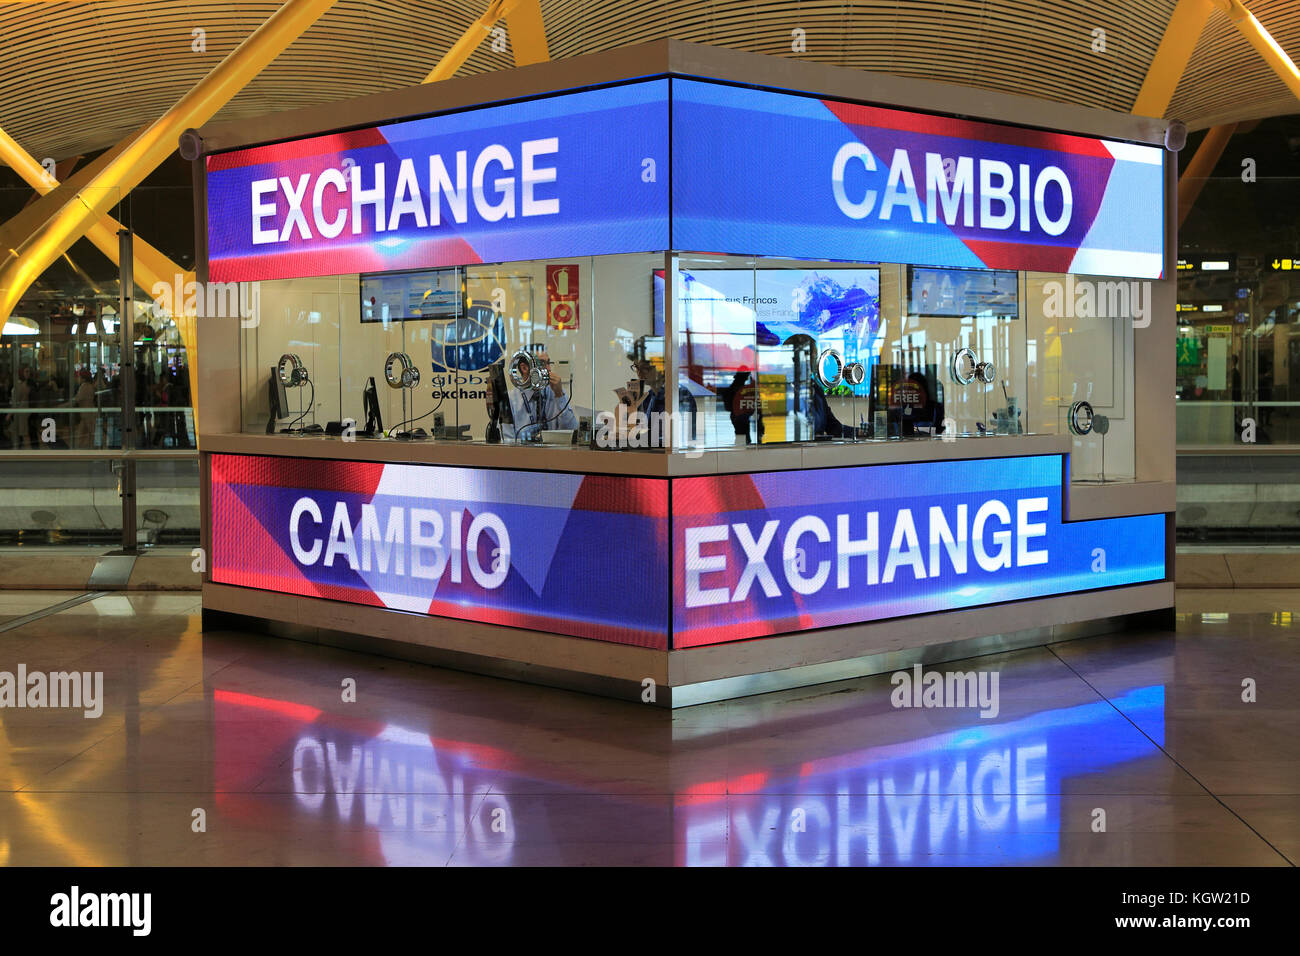 at currency exchange counter stock photos at currency exchange counter stock images alamy. Black Bedroom Furniture Sets. Home Design Ideas